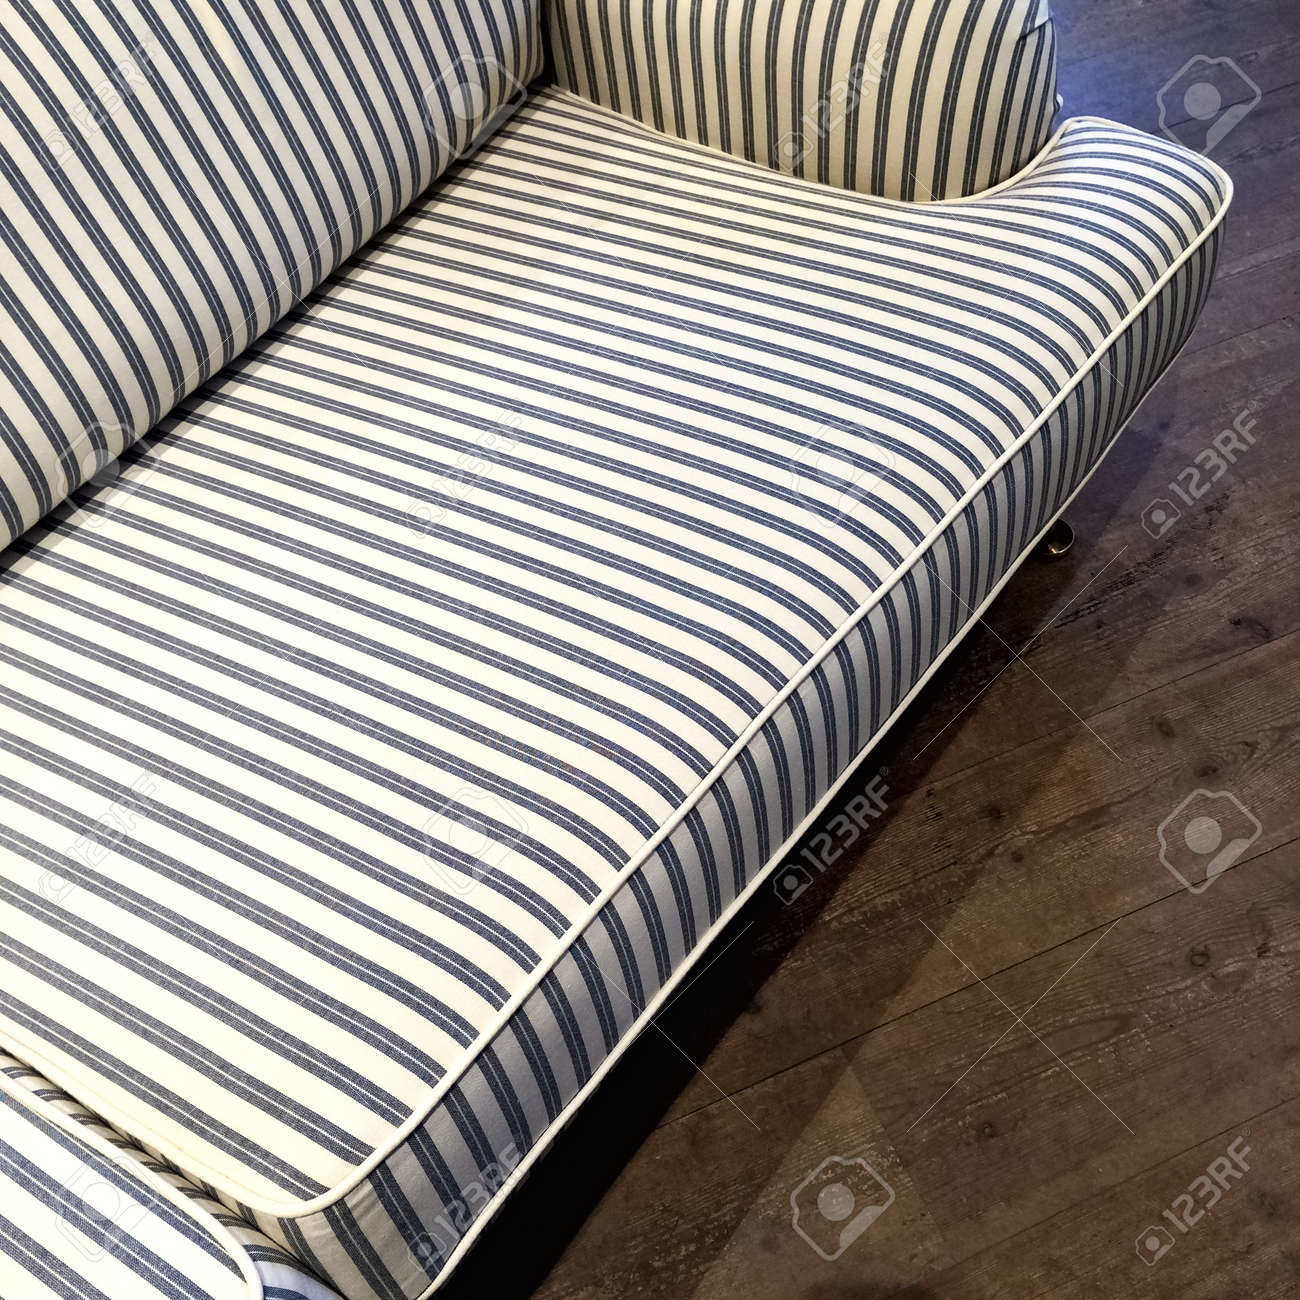 Elegant blue and white striped sofa on dark wooden floor.